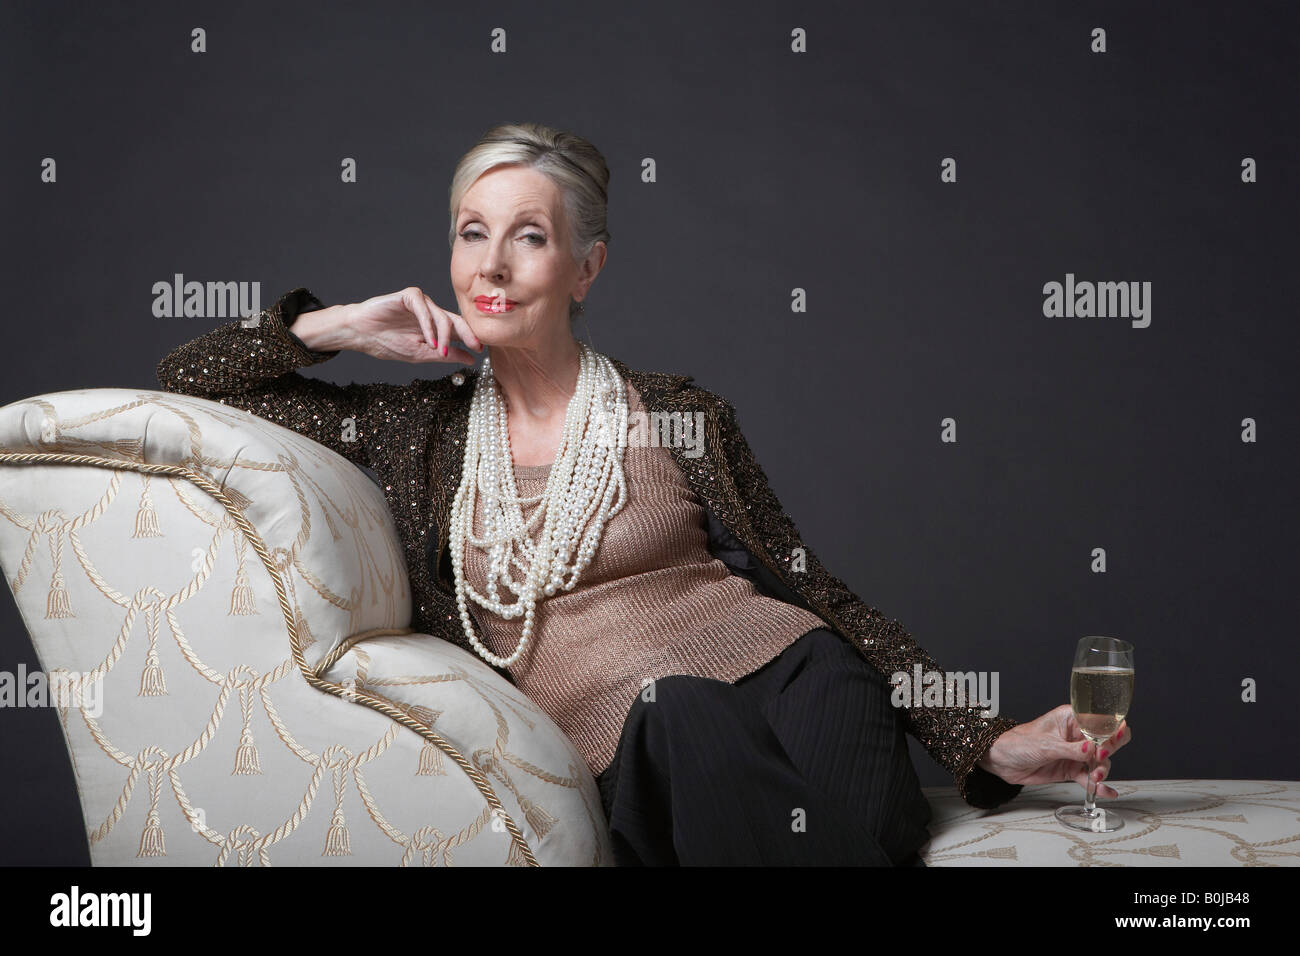 Mature Woman Having Glass of Champagne - Stock Image